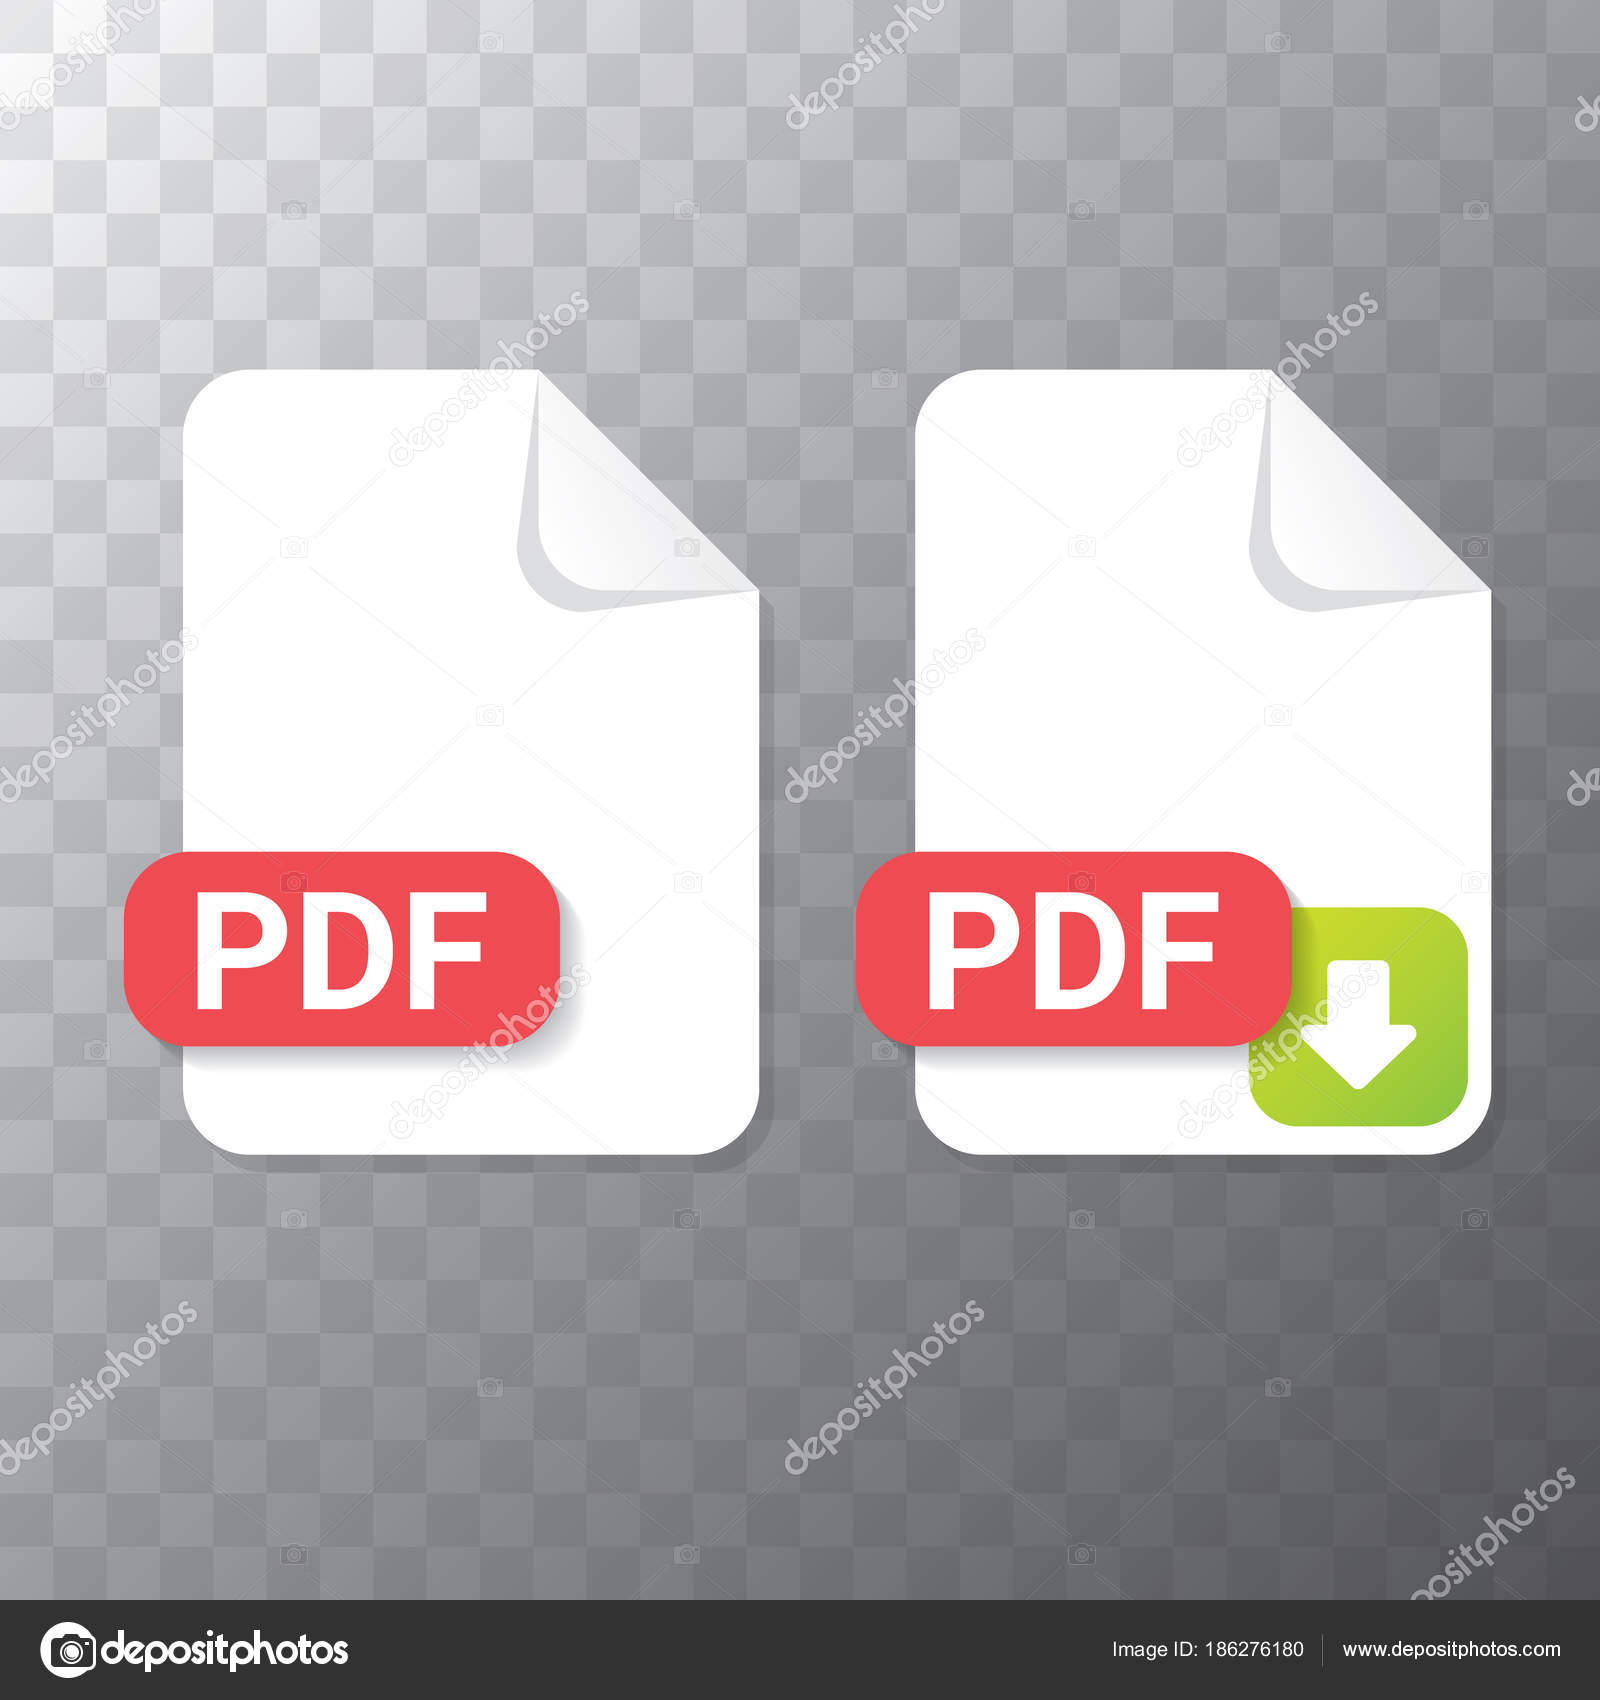 flache Pdf-Dateisymbol Vektor und Vektor-Pdf download Icon-Set ...